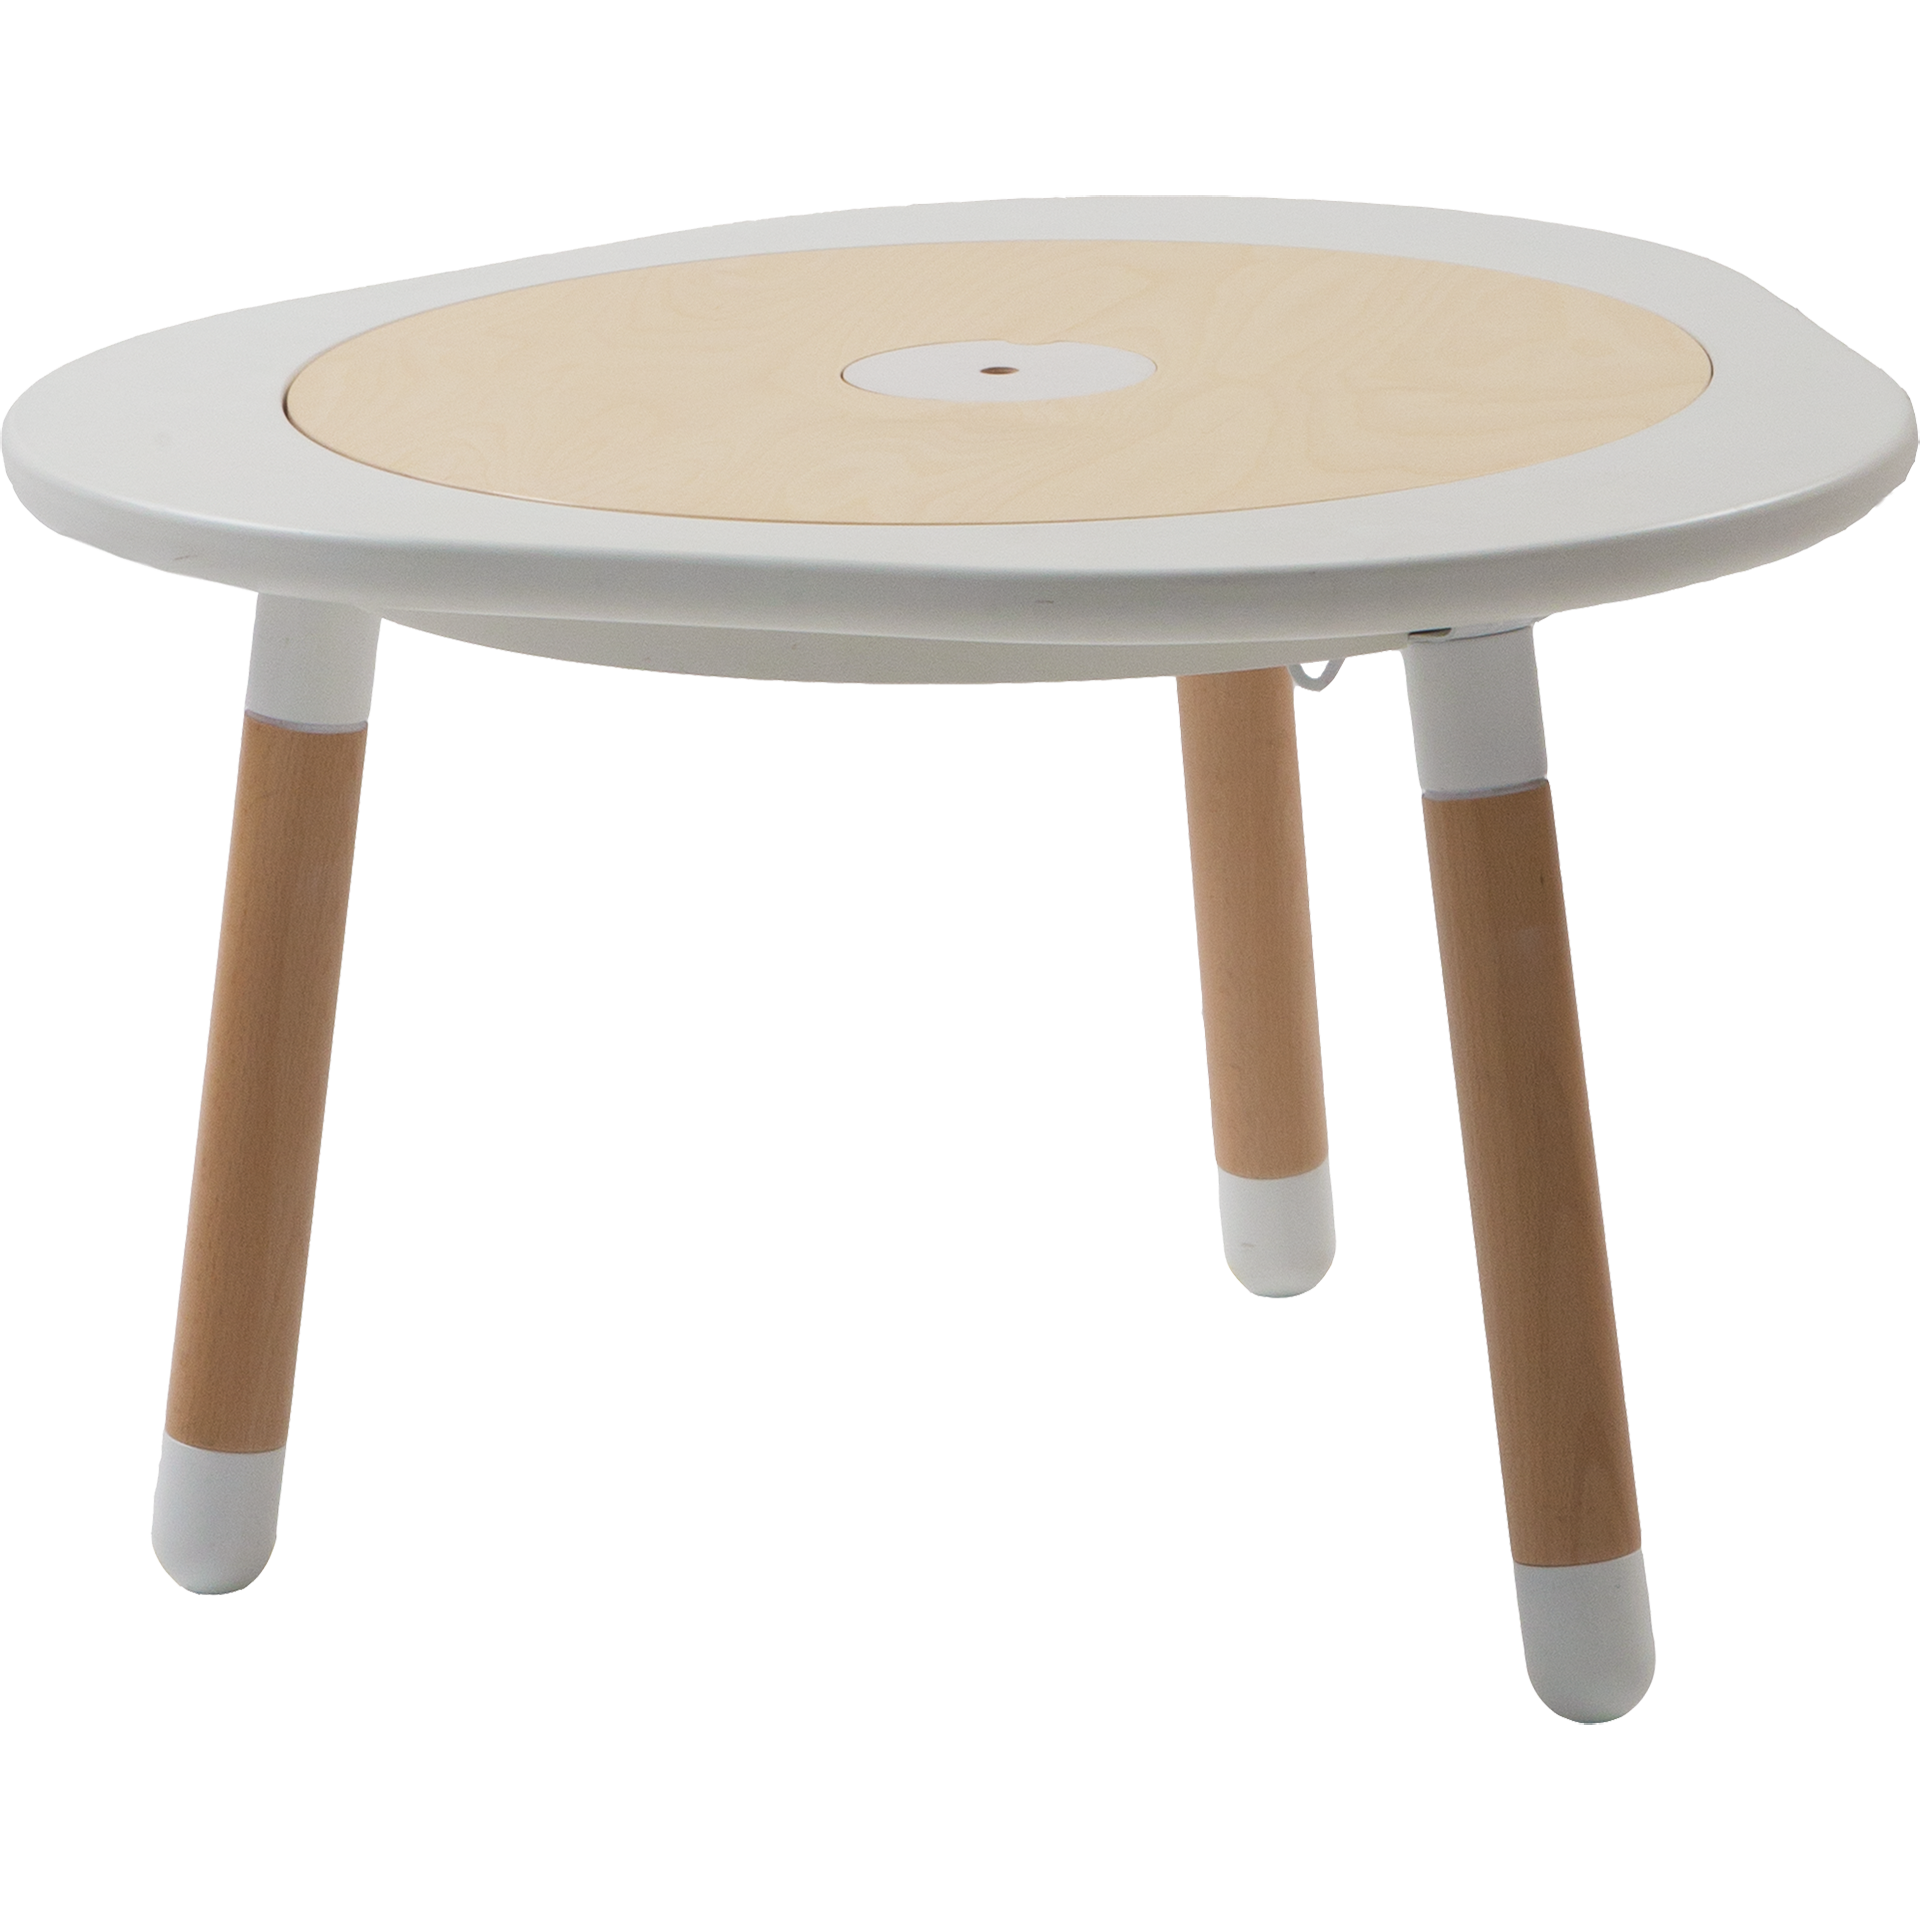 Put your chairs under tables clipart png